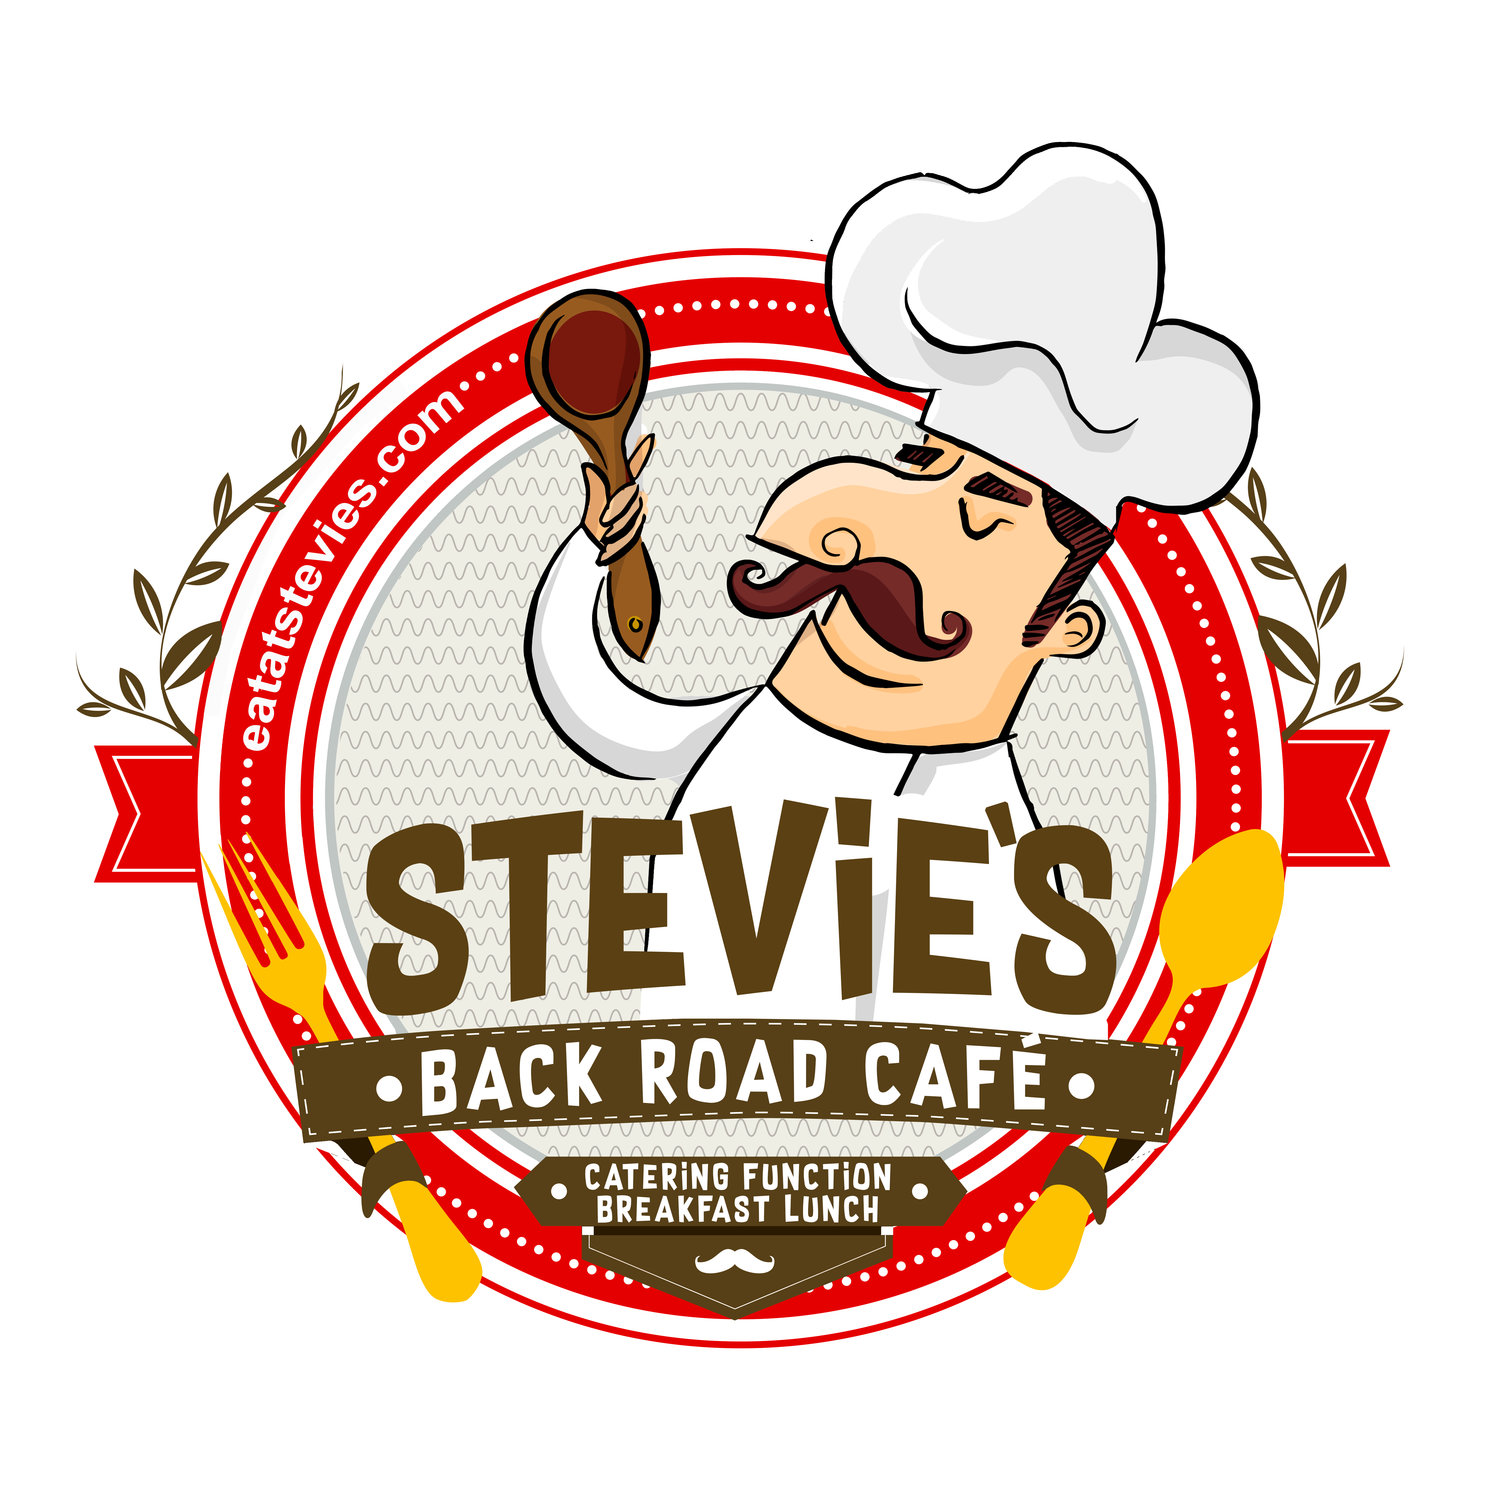 Stevie's Eatery & Back Road Café